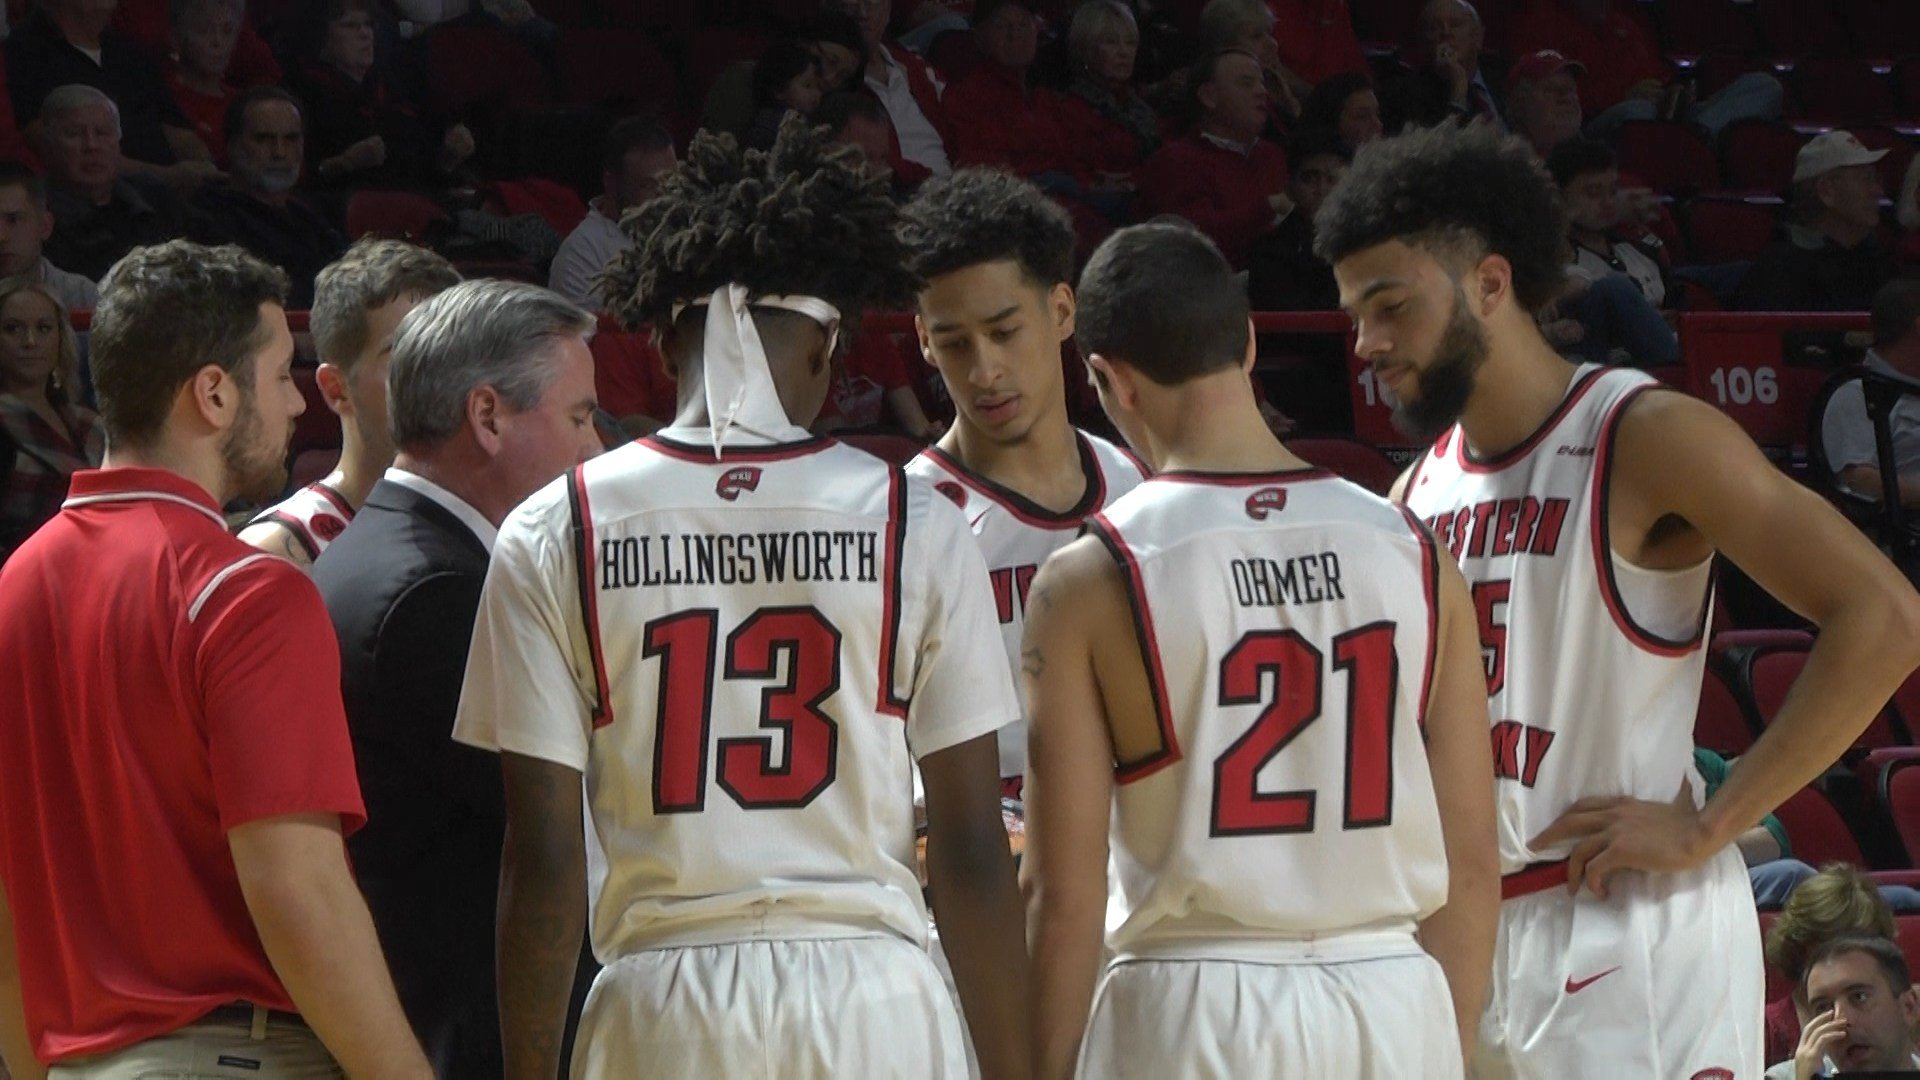 WKU is currently on a four game win streak.